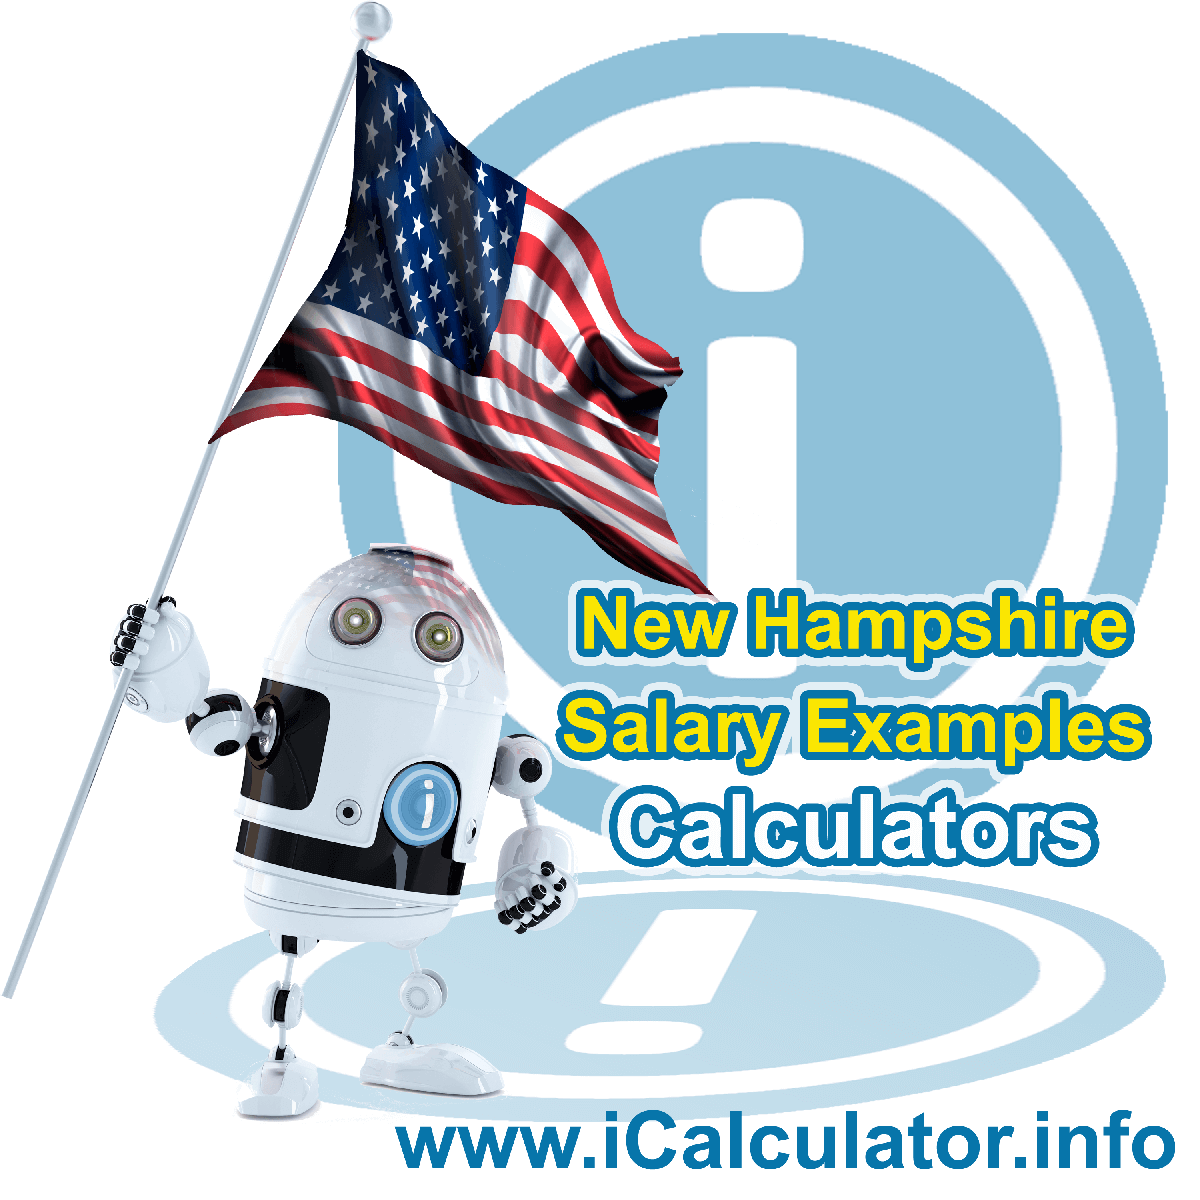 New Hampshire Salary Example for $75,000.00 in 2020 | iCalculator | $75,000.00 salary example for employee and employer paying New Hampshire State tincome taxes. Detailed salary after tax calculation including New Hampshire State Tax, Federal State Tax, Medicare Deductions, Social Security, Capital Gains and other income tax and salary deductions complete with supporting New Hampshire state tax tables